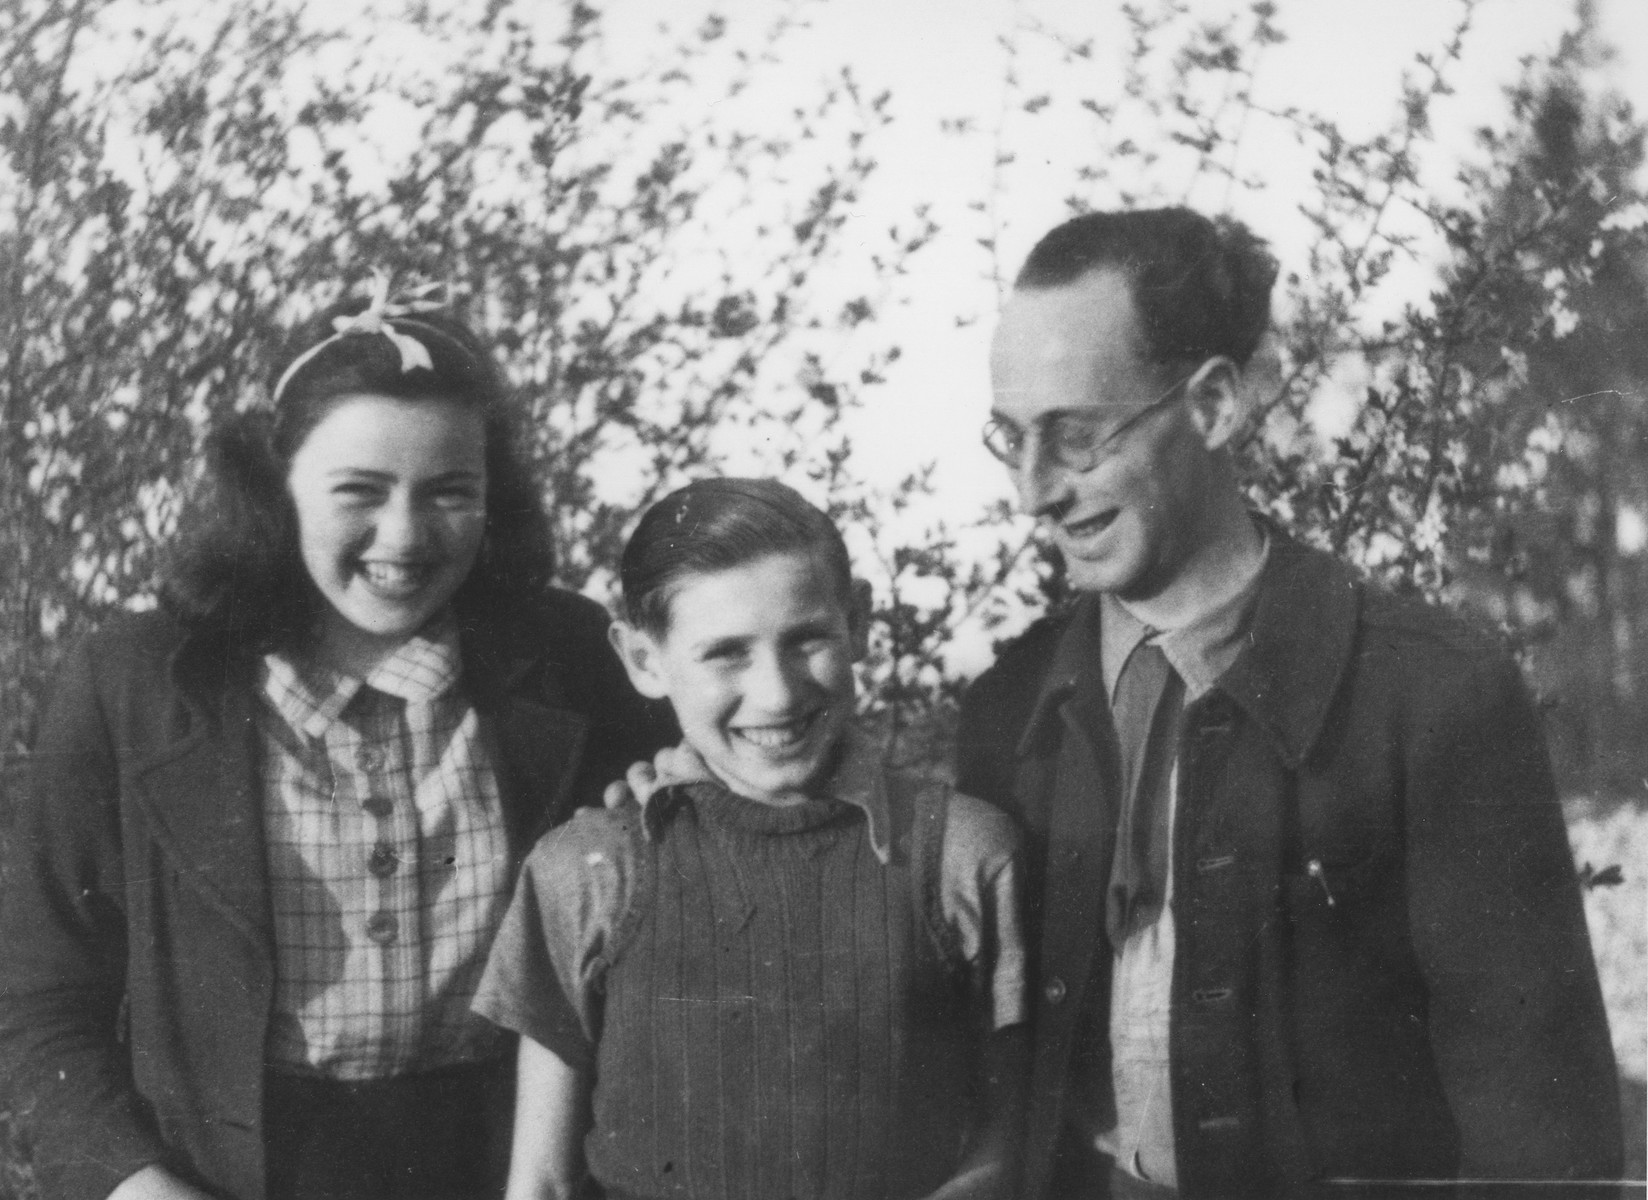 Ingeborg Haas (left) poses with Ernst Jablonski (right) and an unidentified child in the Chabannes children's home.